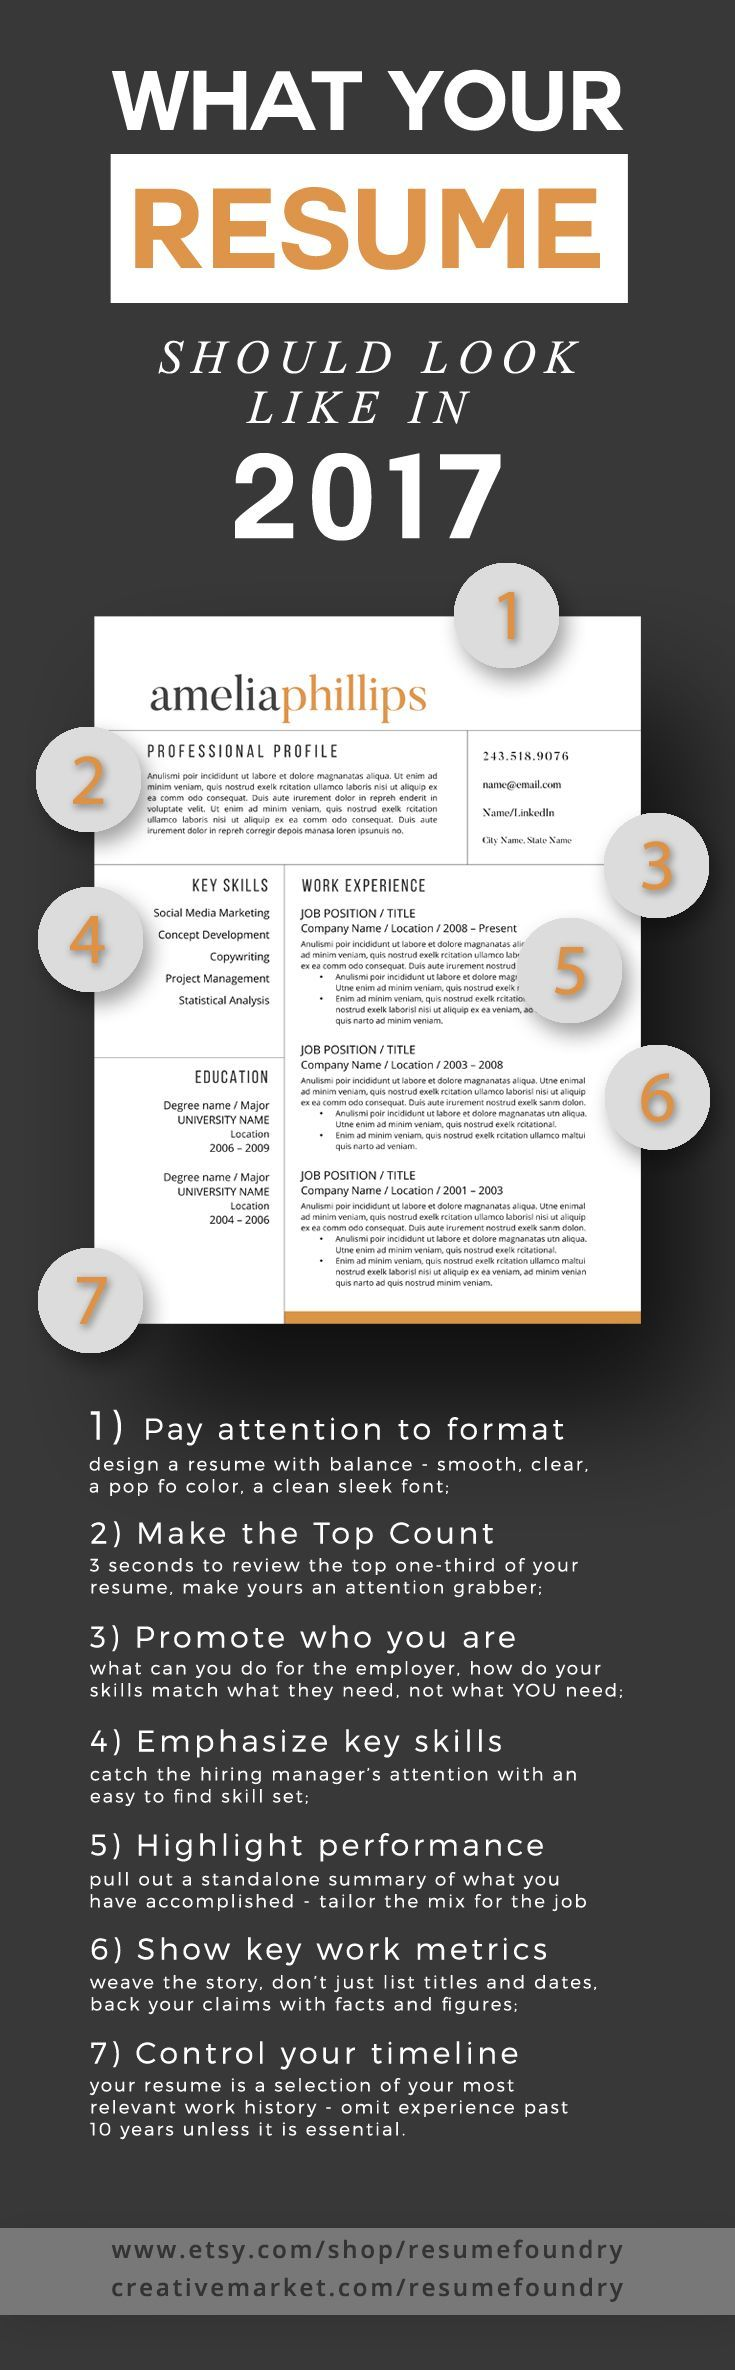 Resume tips what your resume should look like in 2017